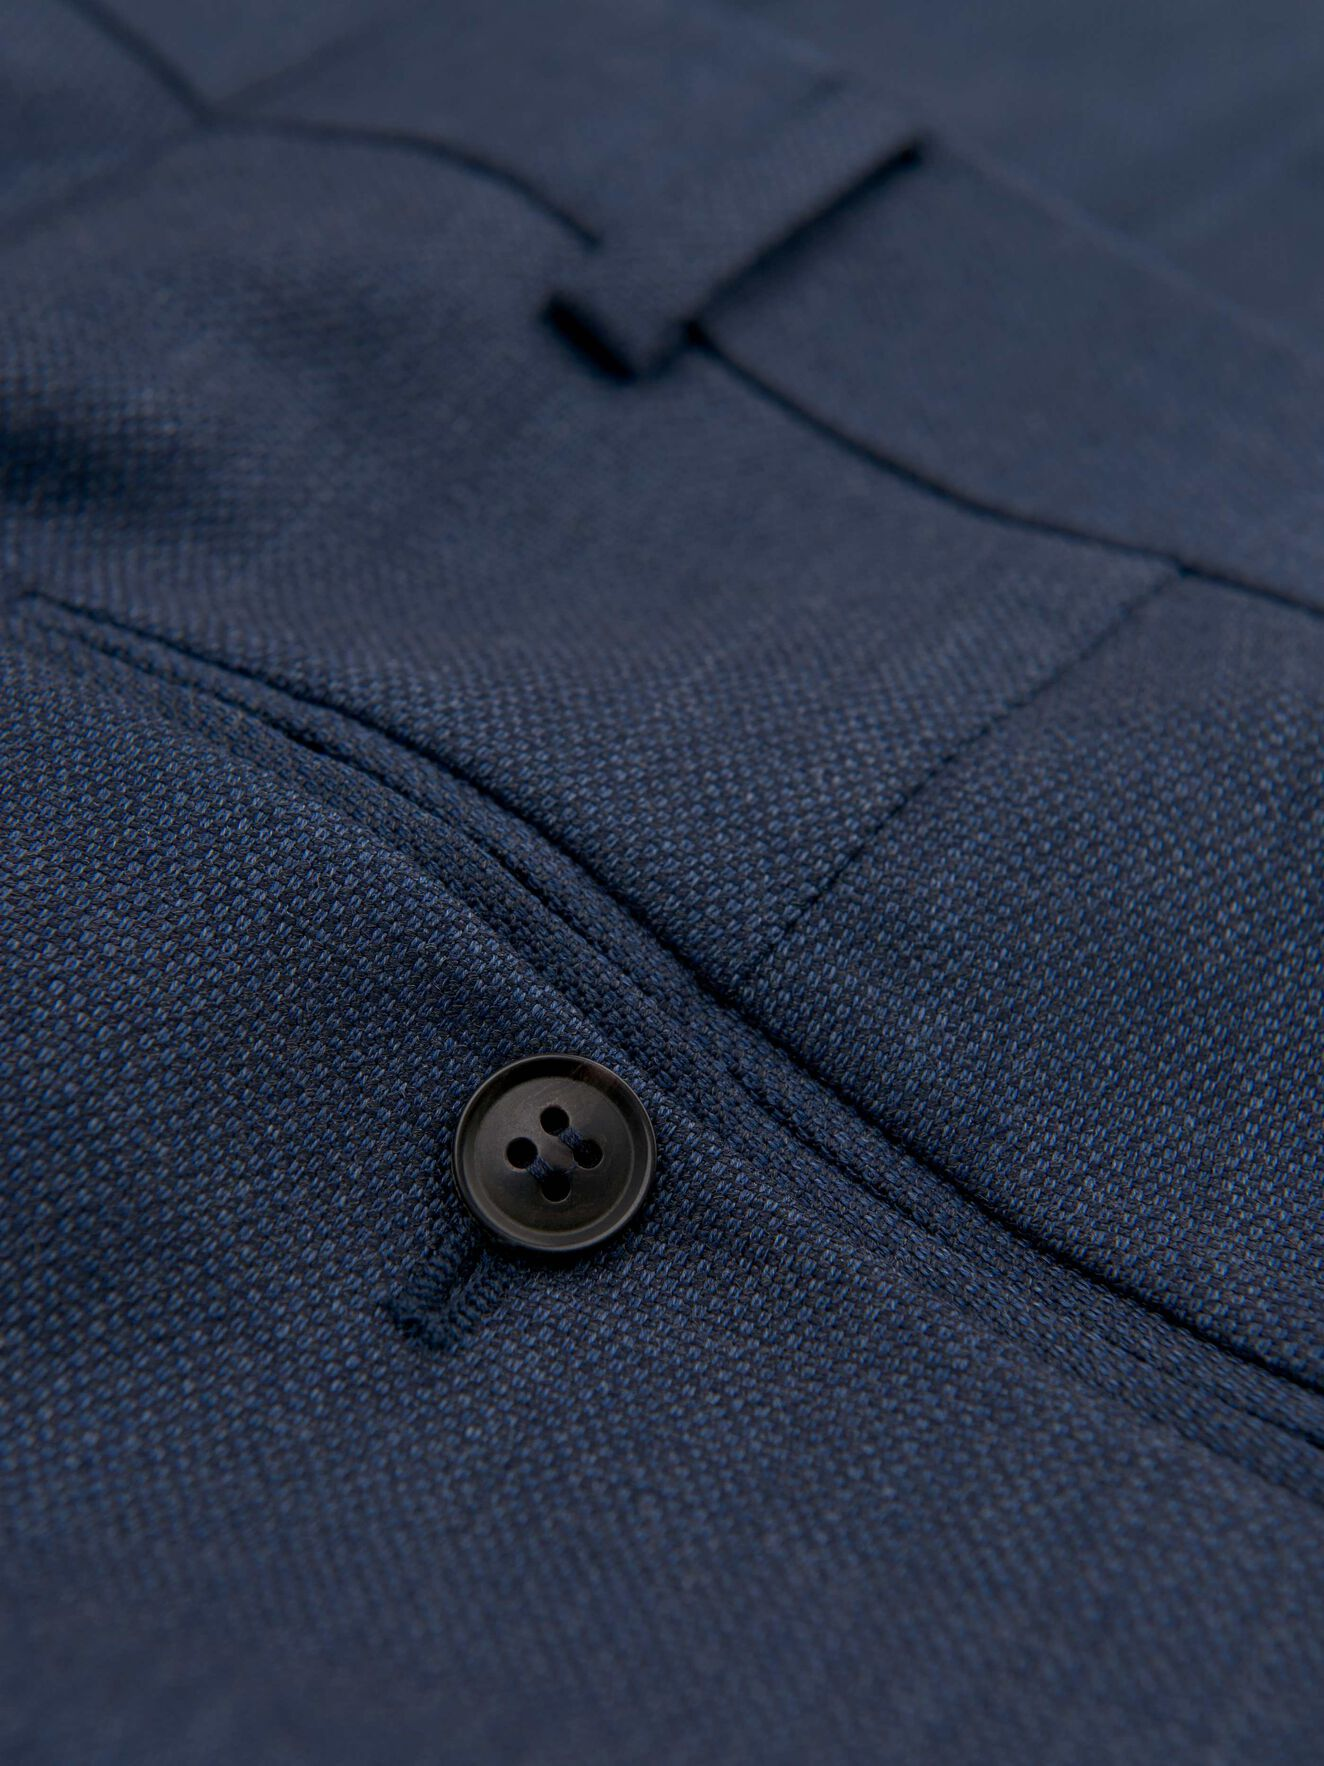 Tordon Trousers in Silver Blue from Tiger of Sweden